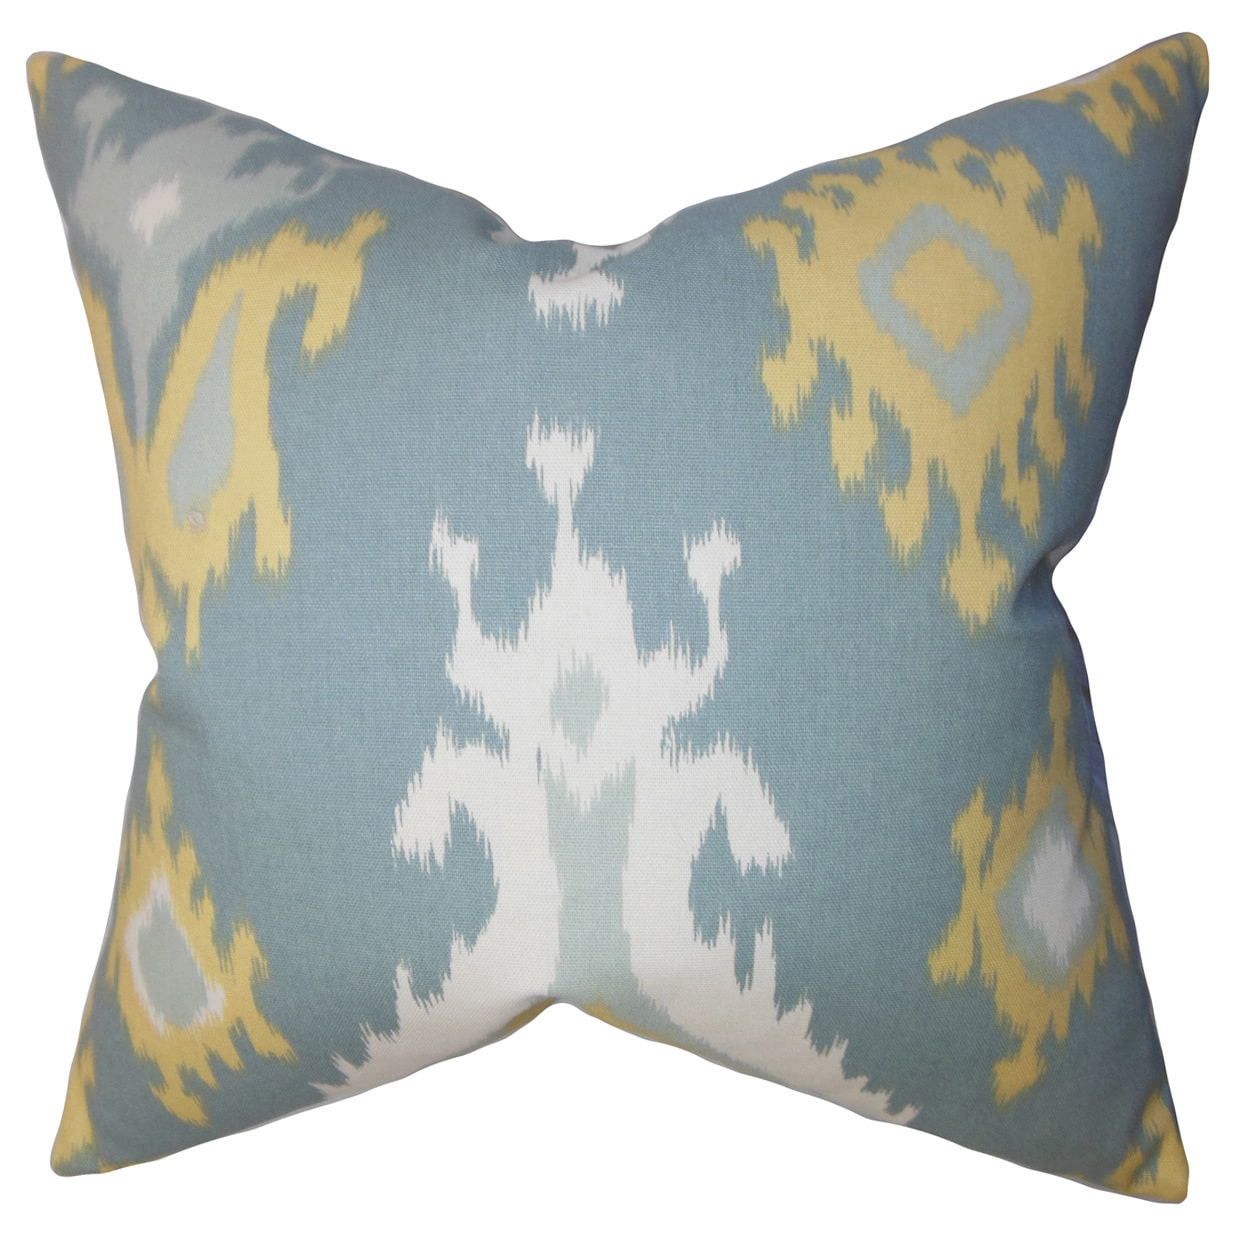 The Pillow Collection Djuna Ikat 22-inch Down Feather Throw Pillow Light Blue